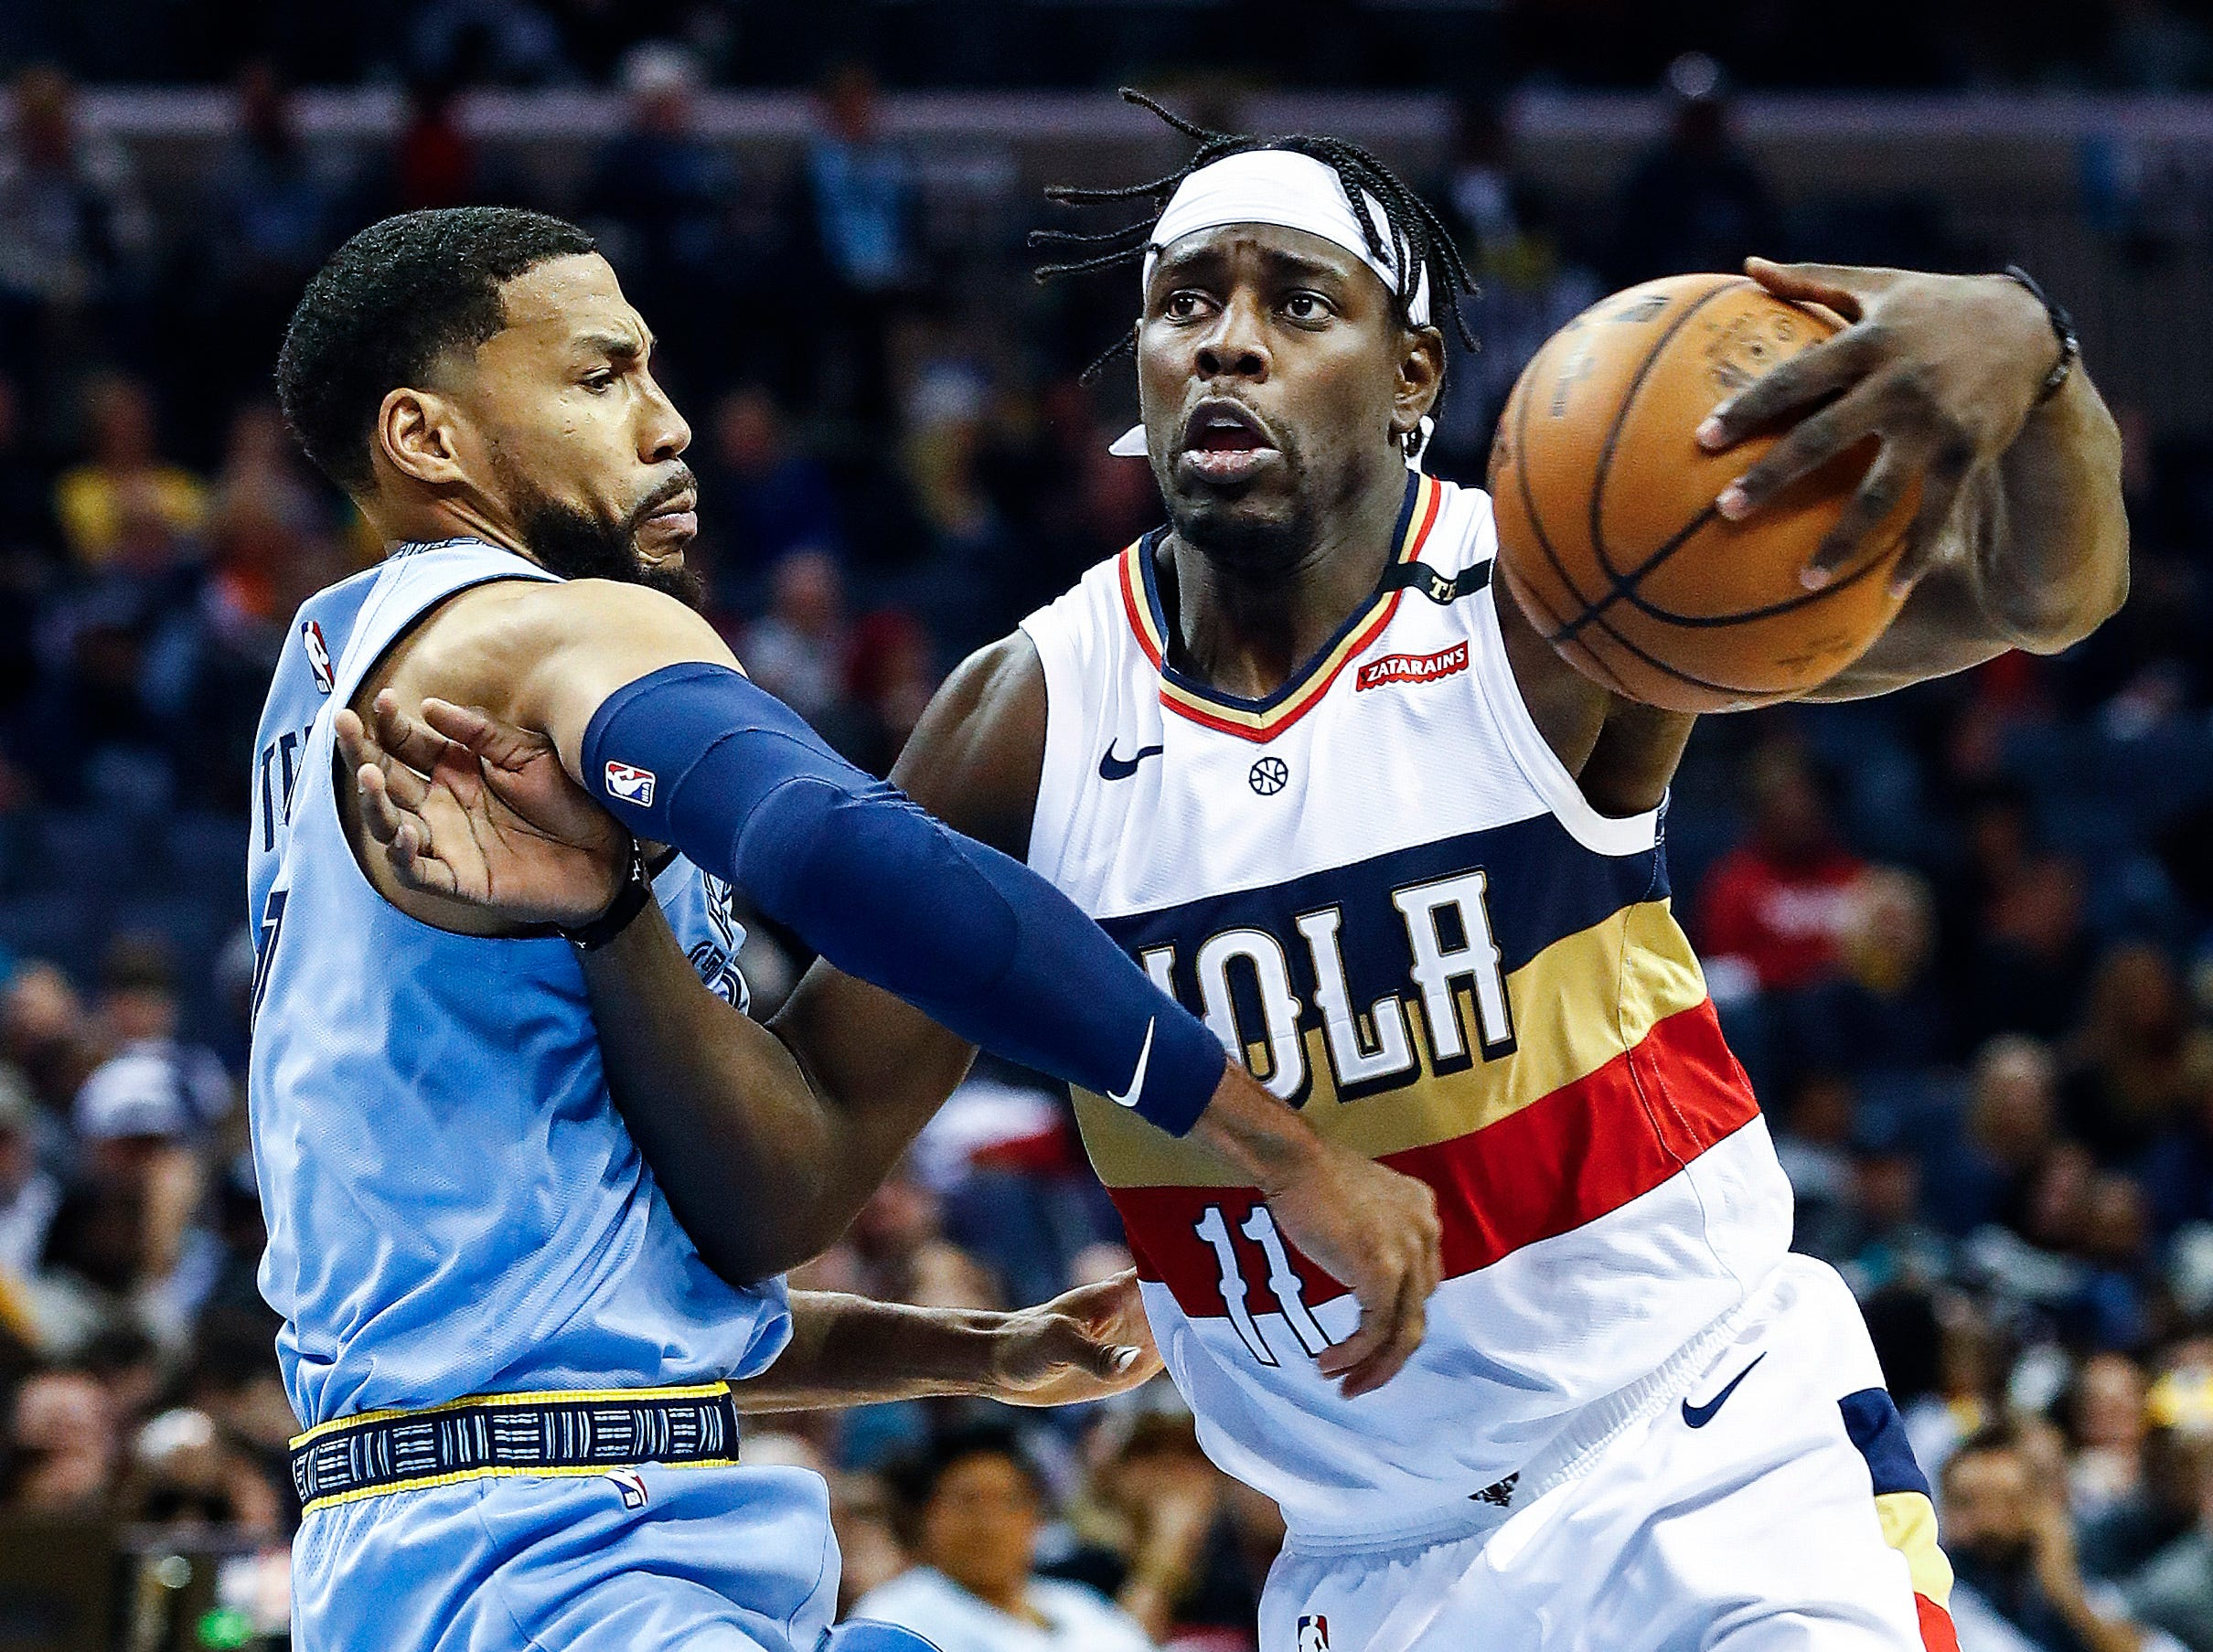 New Orleans Pelicans guard Jrue Holiday (right) drives the lane against Memphis Grizzlies defender Garrett Temple (left) during action at the FedExForum in Memphis, Tenn., Monday, January 21, 2019.